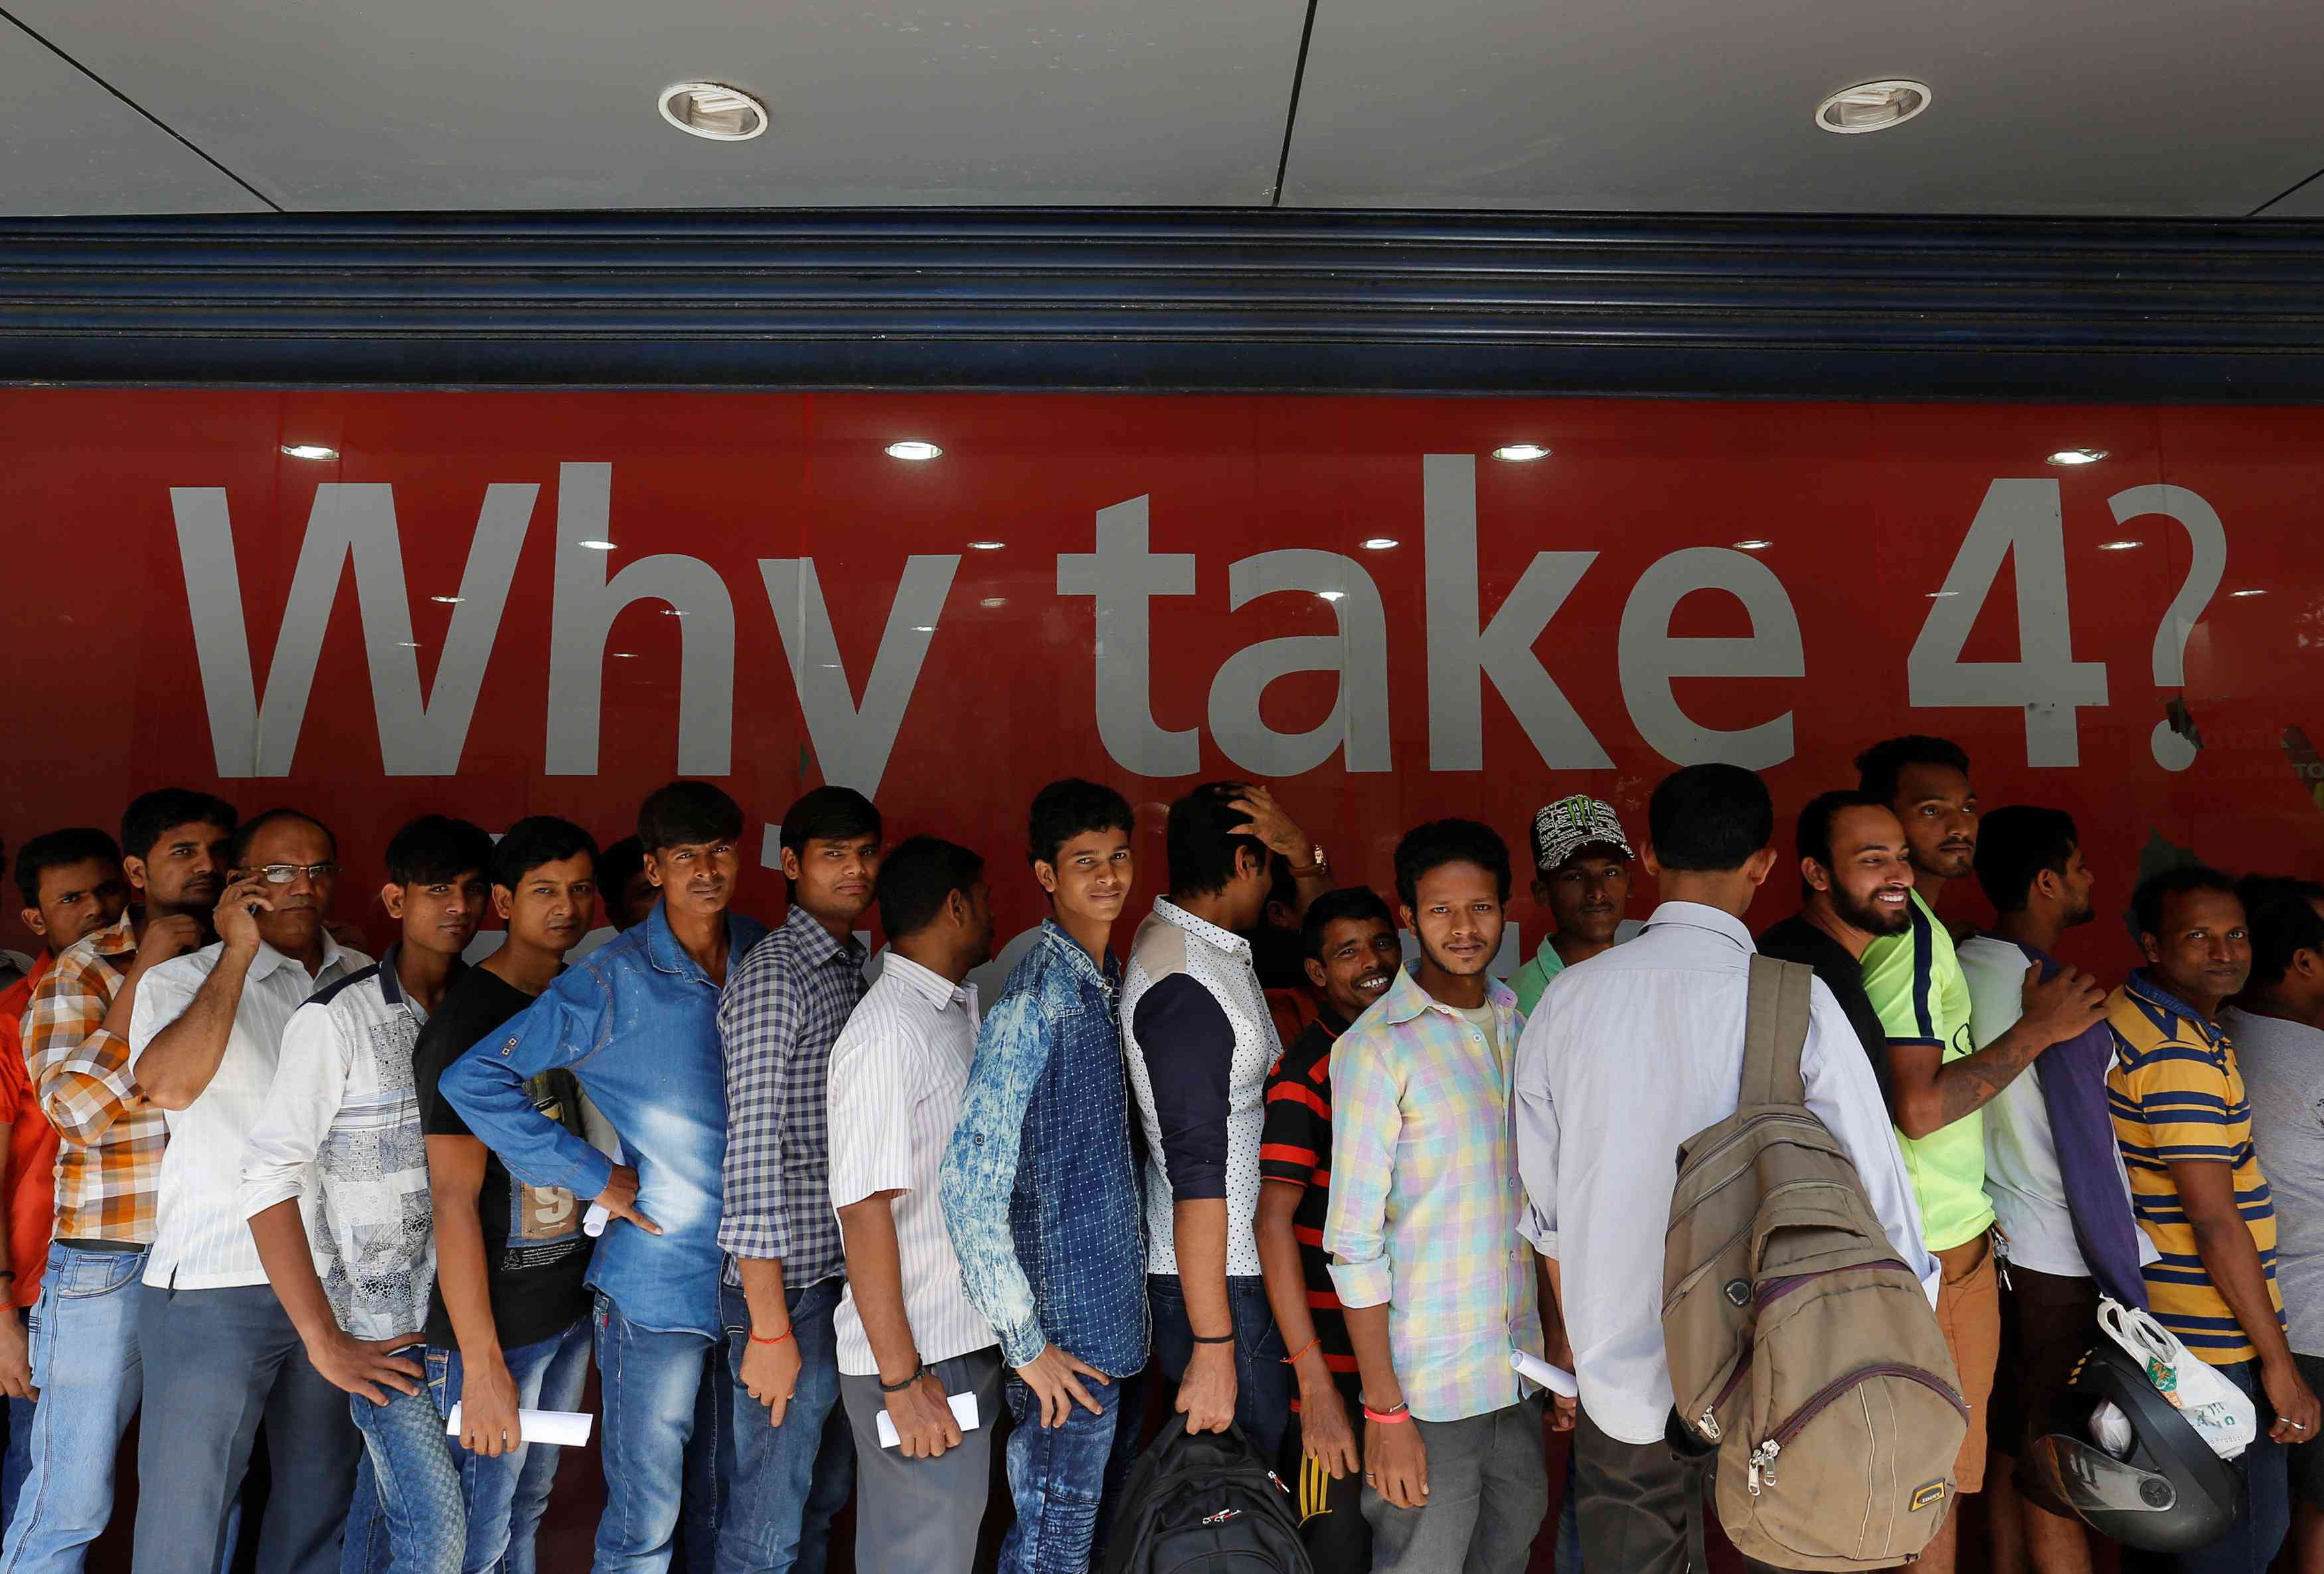 Customer line up to get new currency note in the aftermath of Prime Minister Narendra Modi's decision to demonetise high-value notes. Credit: Danish Siddiqui/Reuter